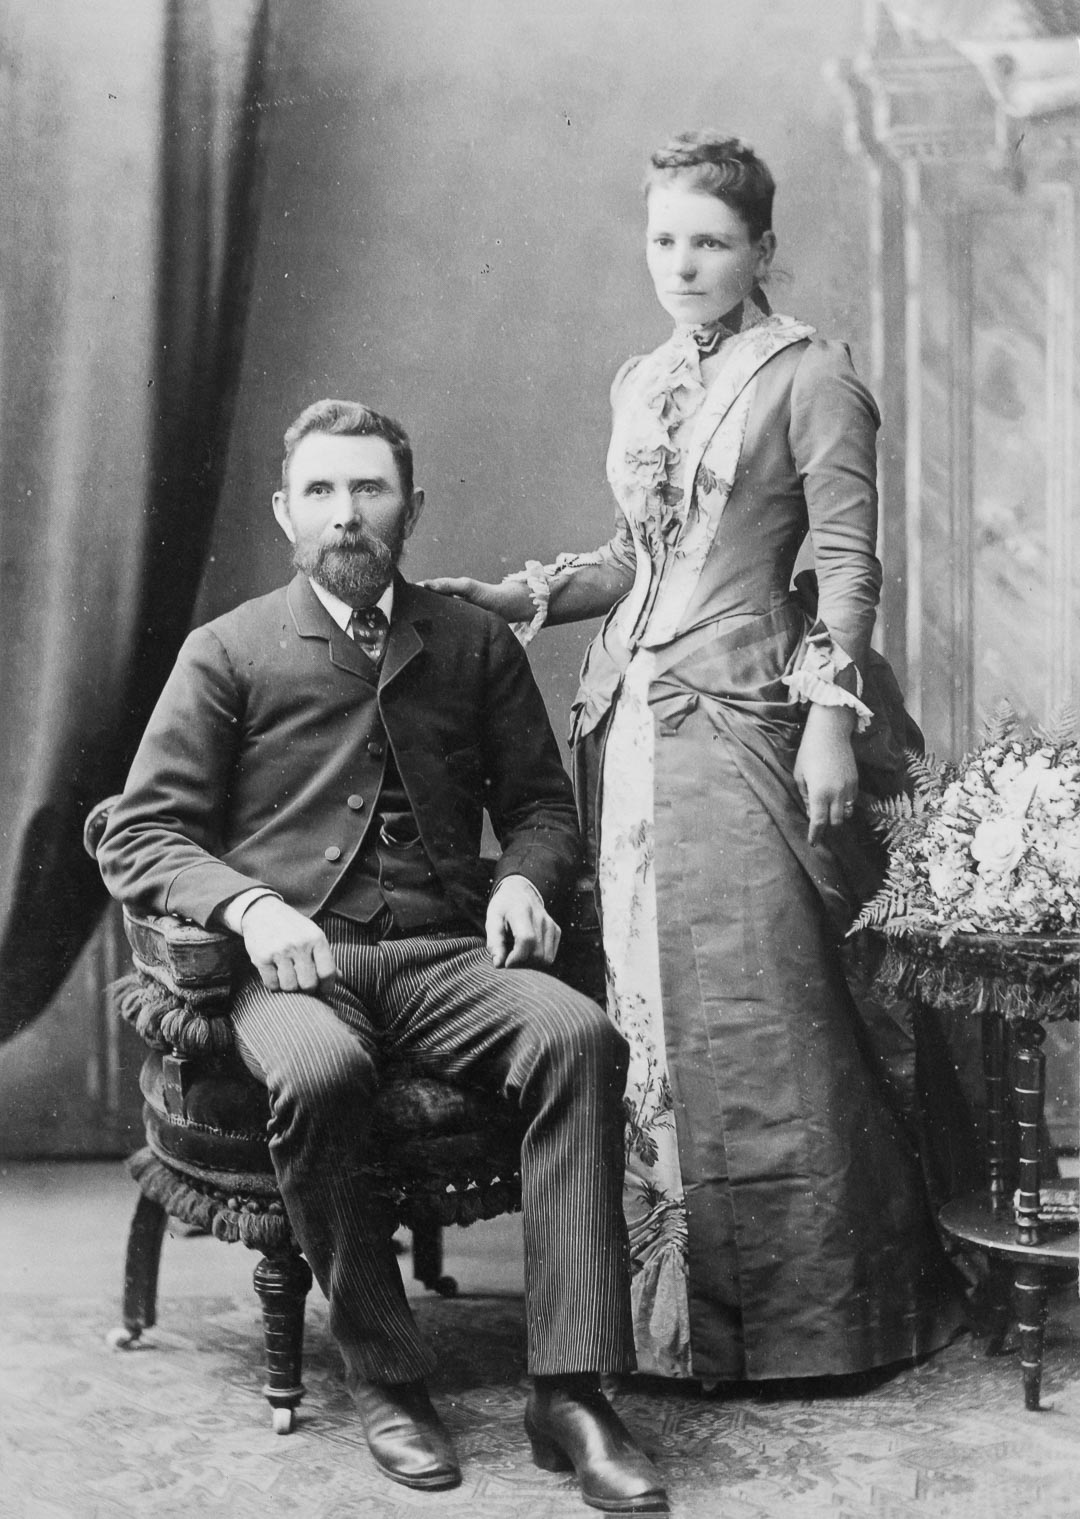 Emma Draper, 1858 - 1903. Daughter of Charles and Catherine Draper.  Pictured with her husband Thomas Underwood c 1890